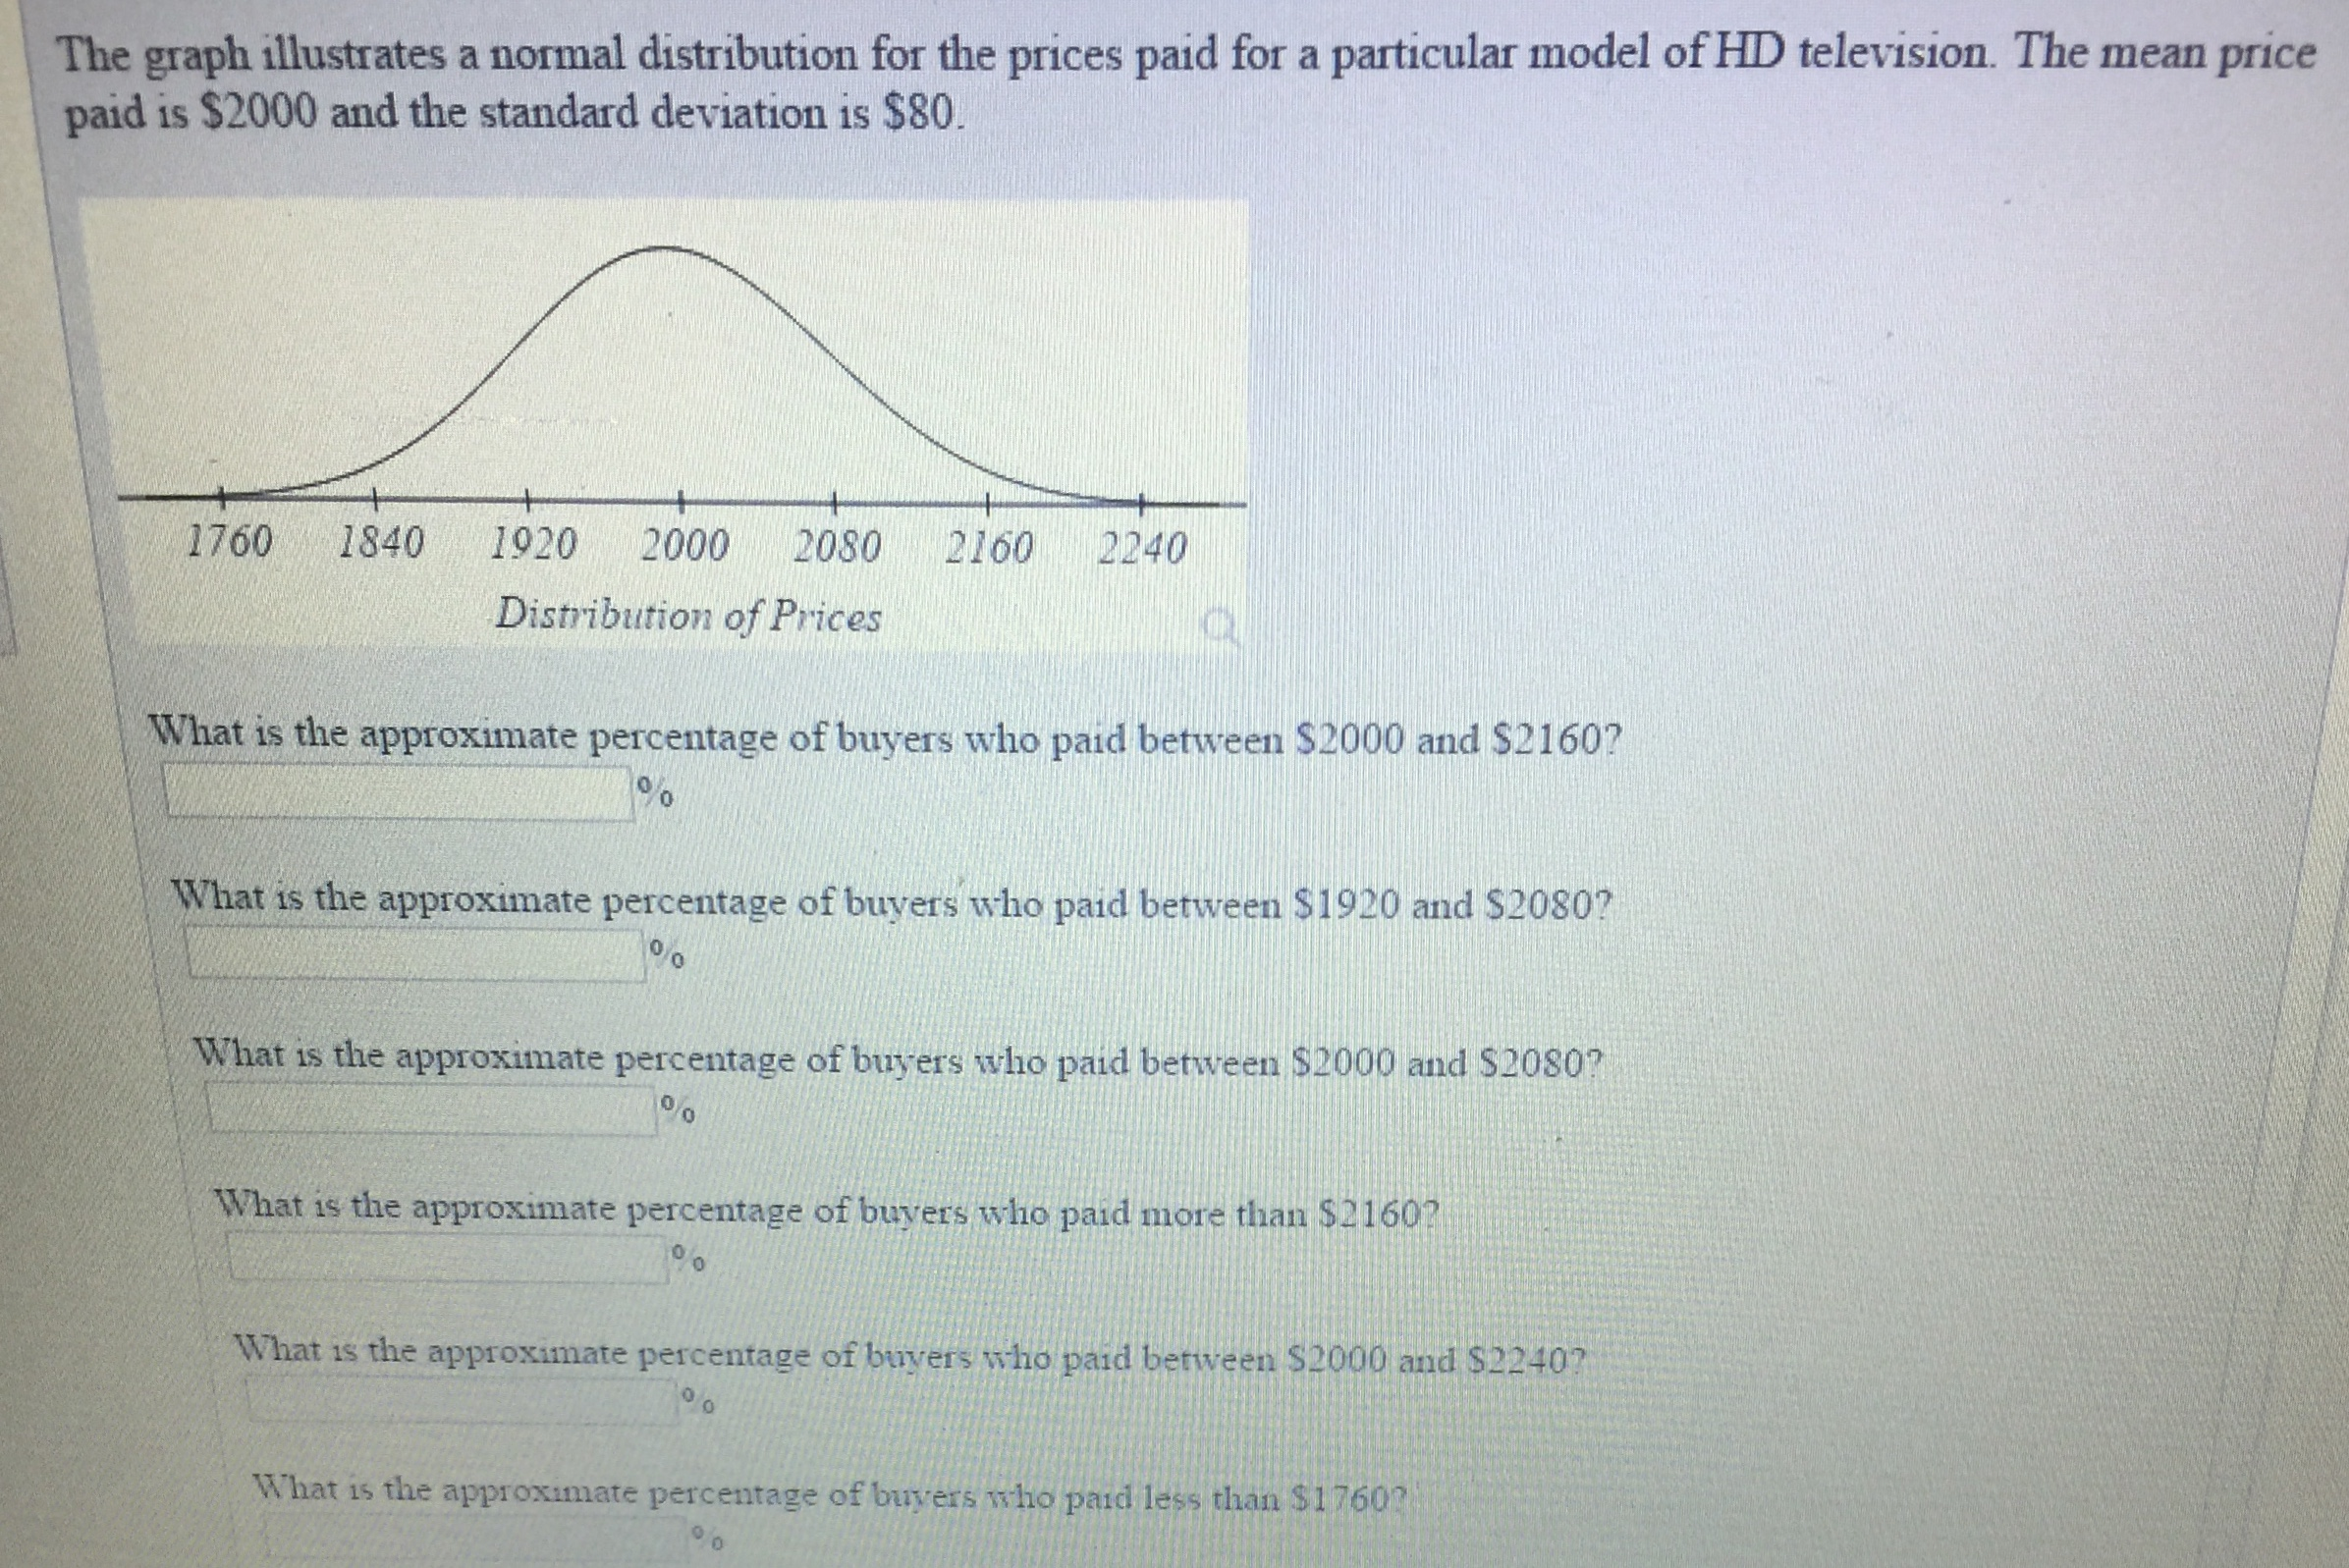 The graph illustrates a normal distribution for the prices paid for a particular model of HD television. The mean price paid is $2000 and the standard deviation is $80 1760 1840 1920 2000 2080 2160 2240 Distribution of Prices What is the approximate percentage of buyers who paid between $2000 and S2160? 9% What is the approximate percentage of buyers who paid between $1920 and $2080? 0 0 What is the approximate percentage of buyers who paid between $2000 and S2080? 0 0 What is the approximate percentage of buyers who paid more than $2160 0 What is the approximate percentage of buyers who paid berween $2000 and $2240? 0 What is the approximate percentage of buyers m ho paid less than $1760?